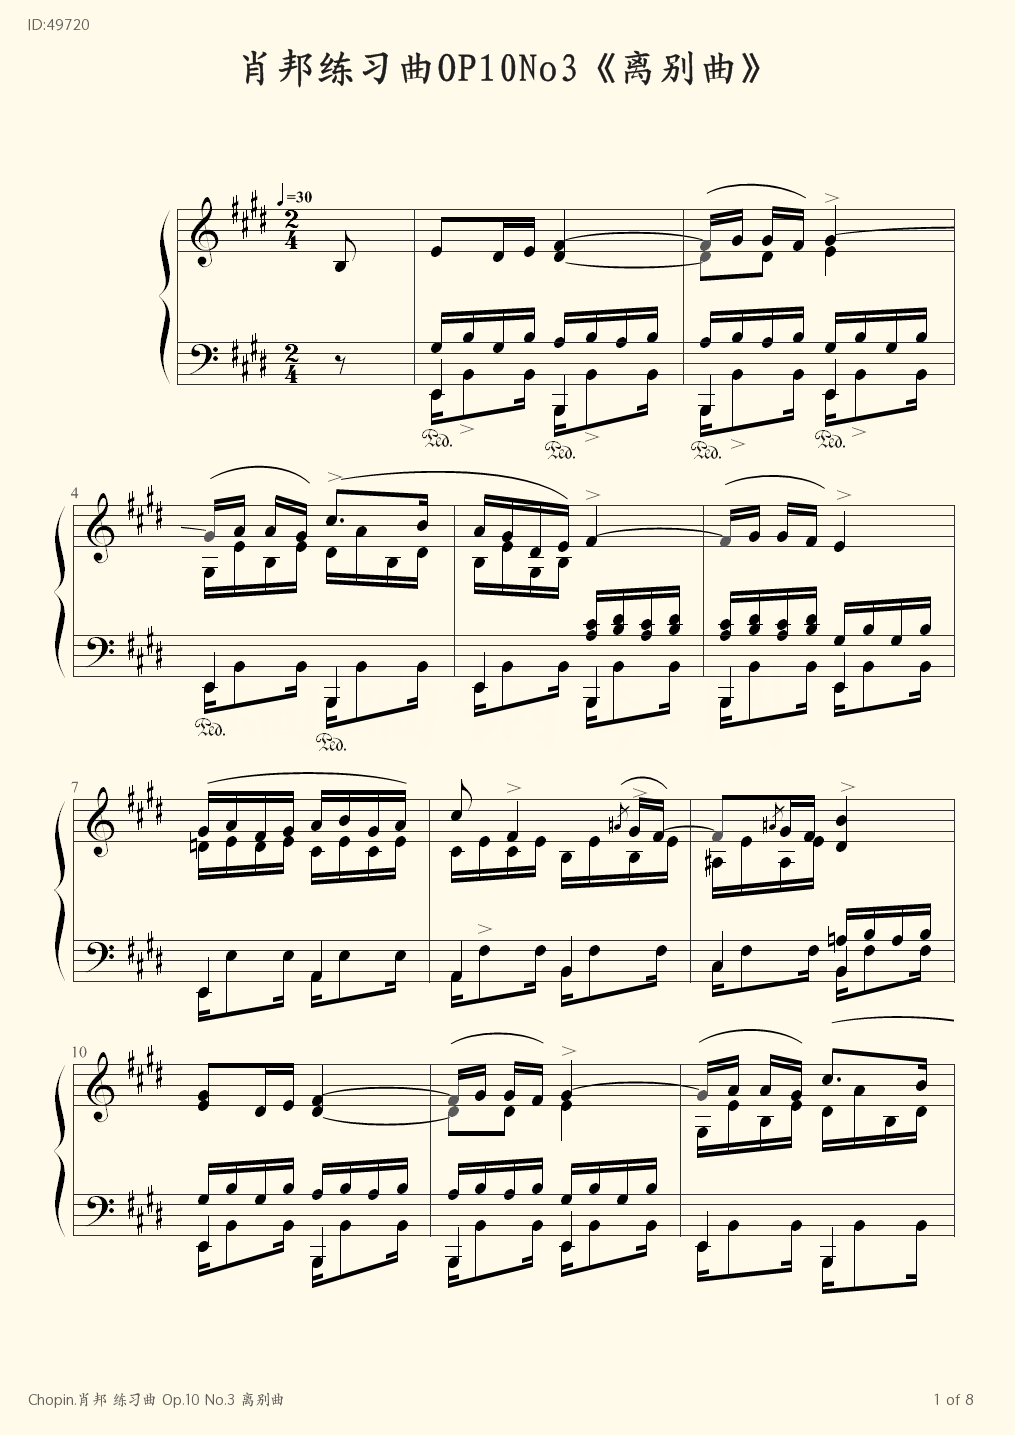 Chopin Op 10 No 3  - Chopin  - first page